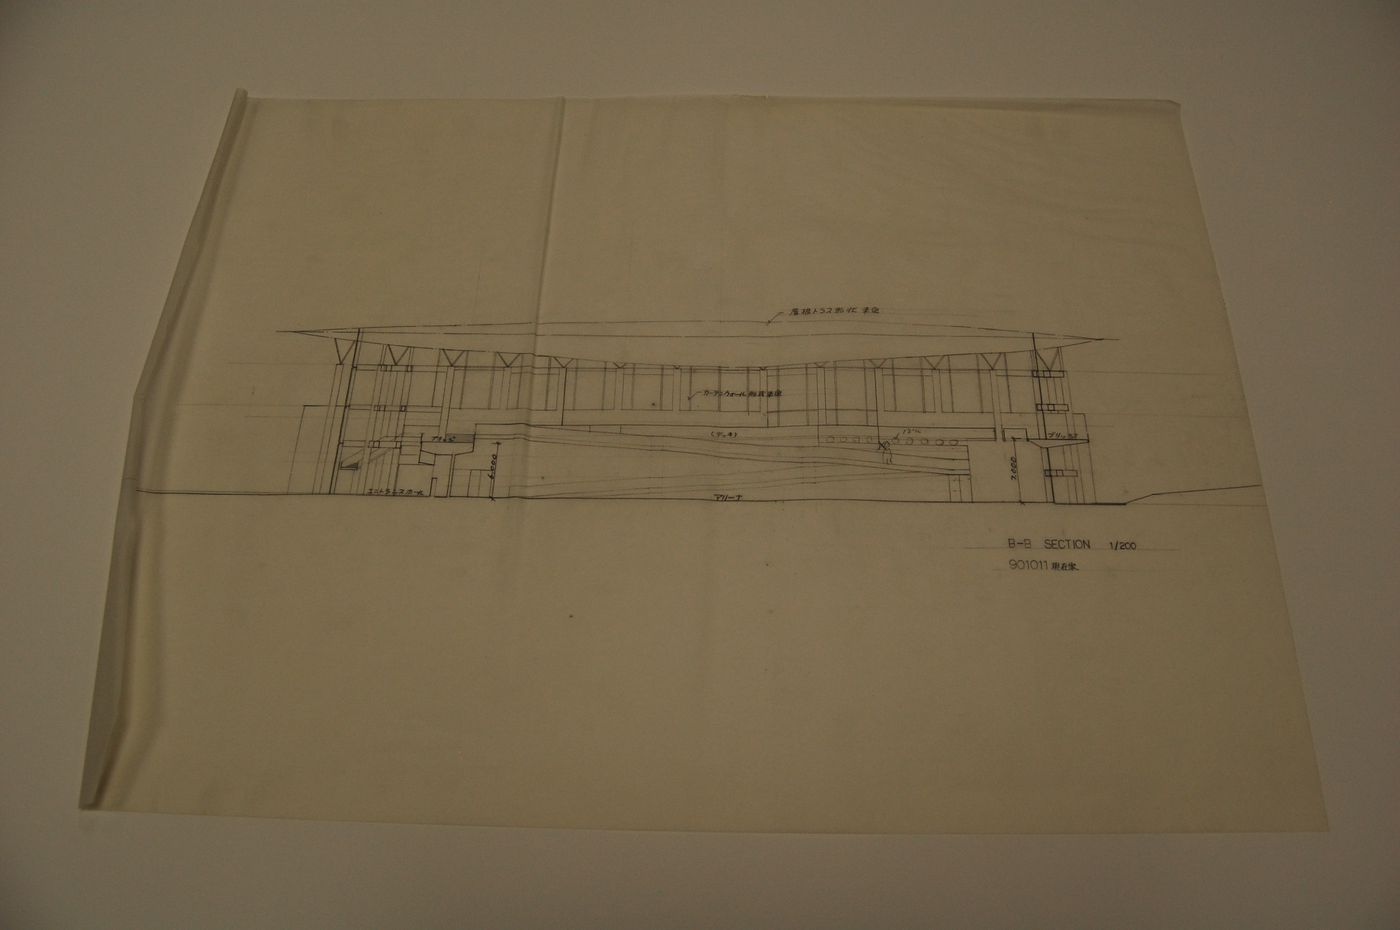 Design development drawing: section, Galaxy Toyama, Imizu, Toyama, Japan